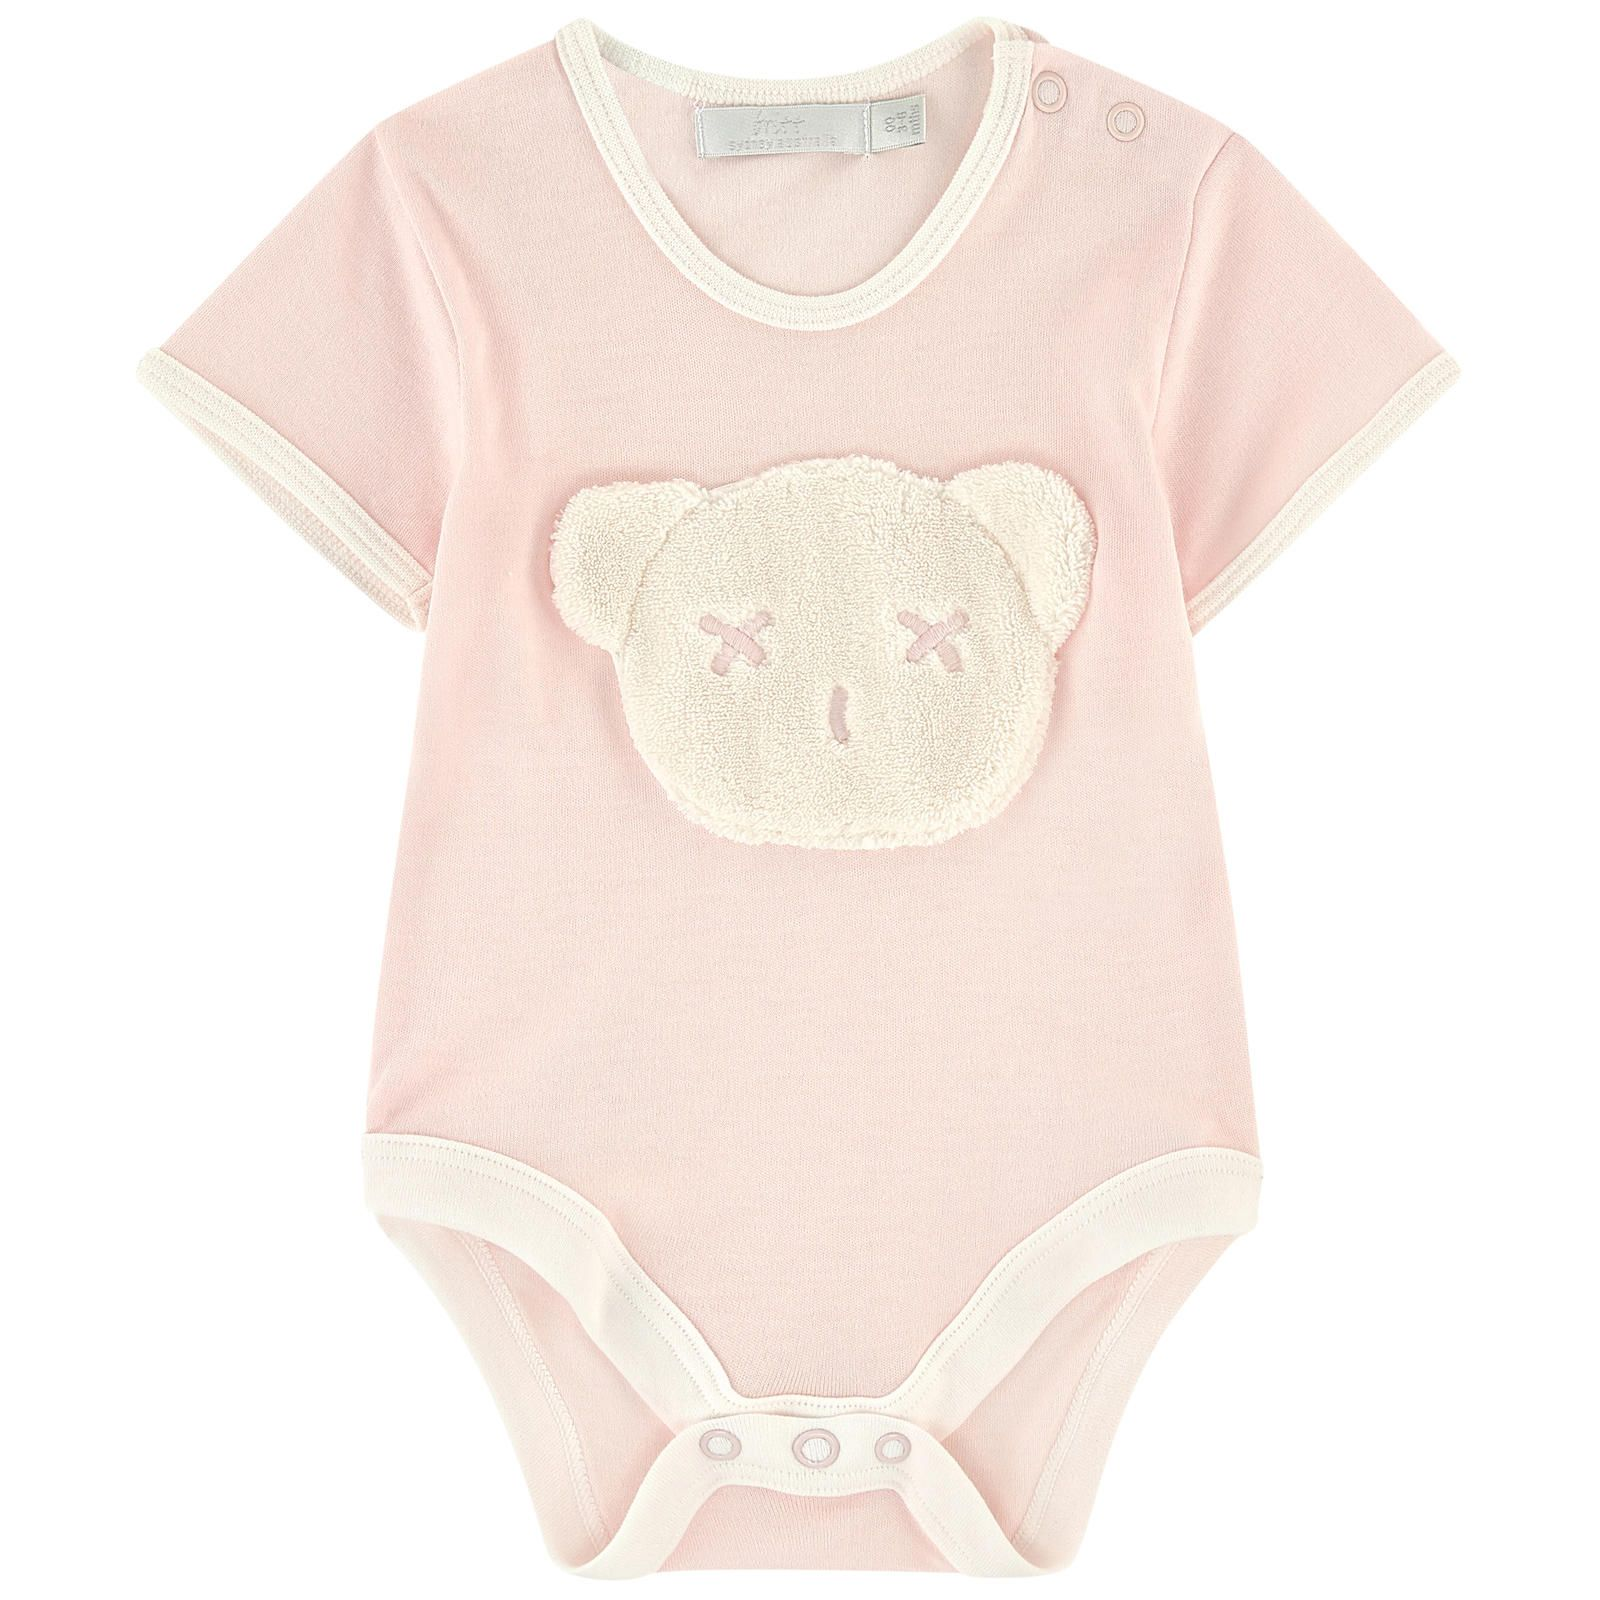 Cuddly teddy bamboo knit onesie LC Girl Clothing and Gifts